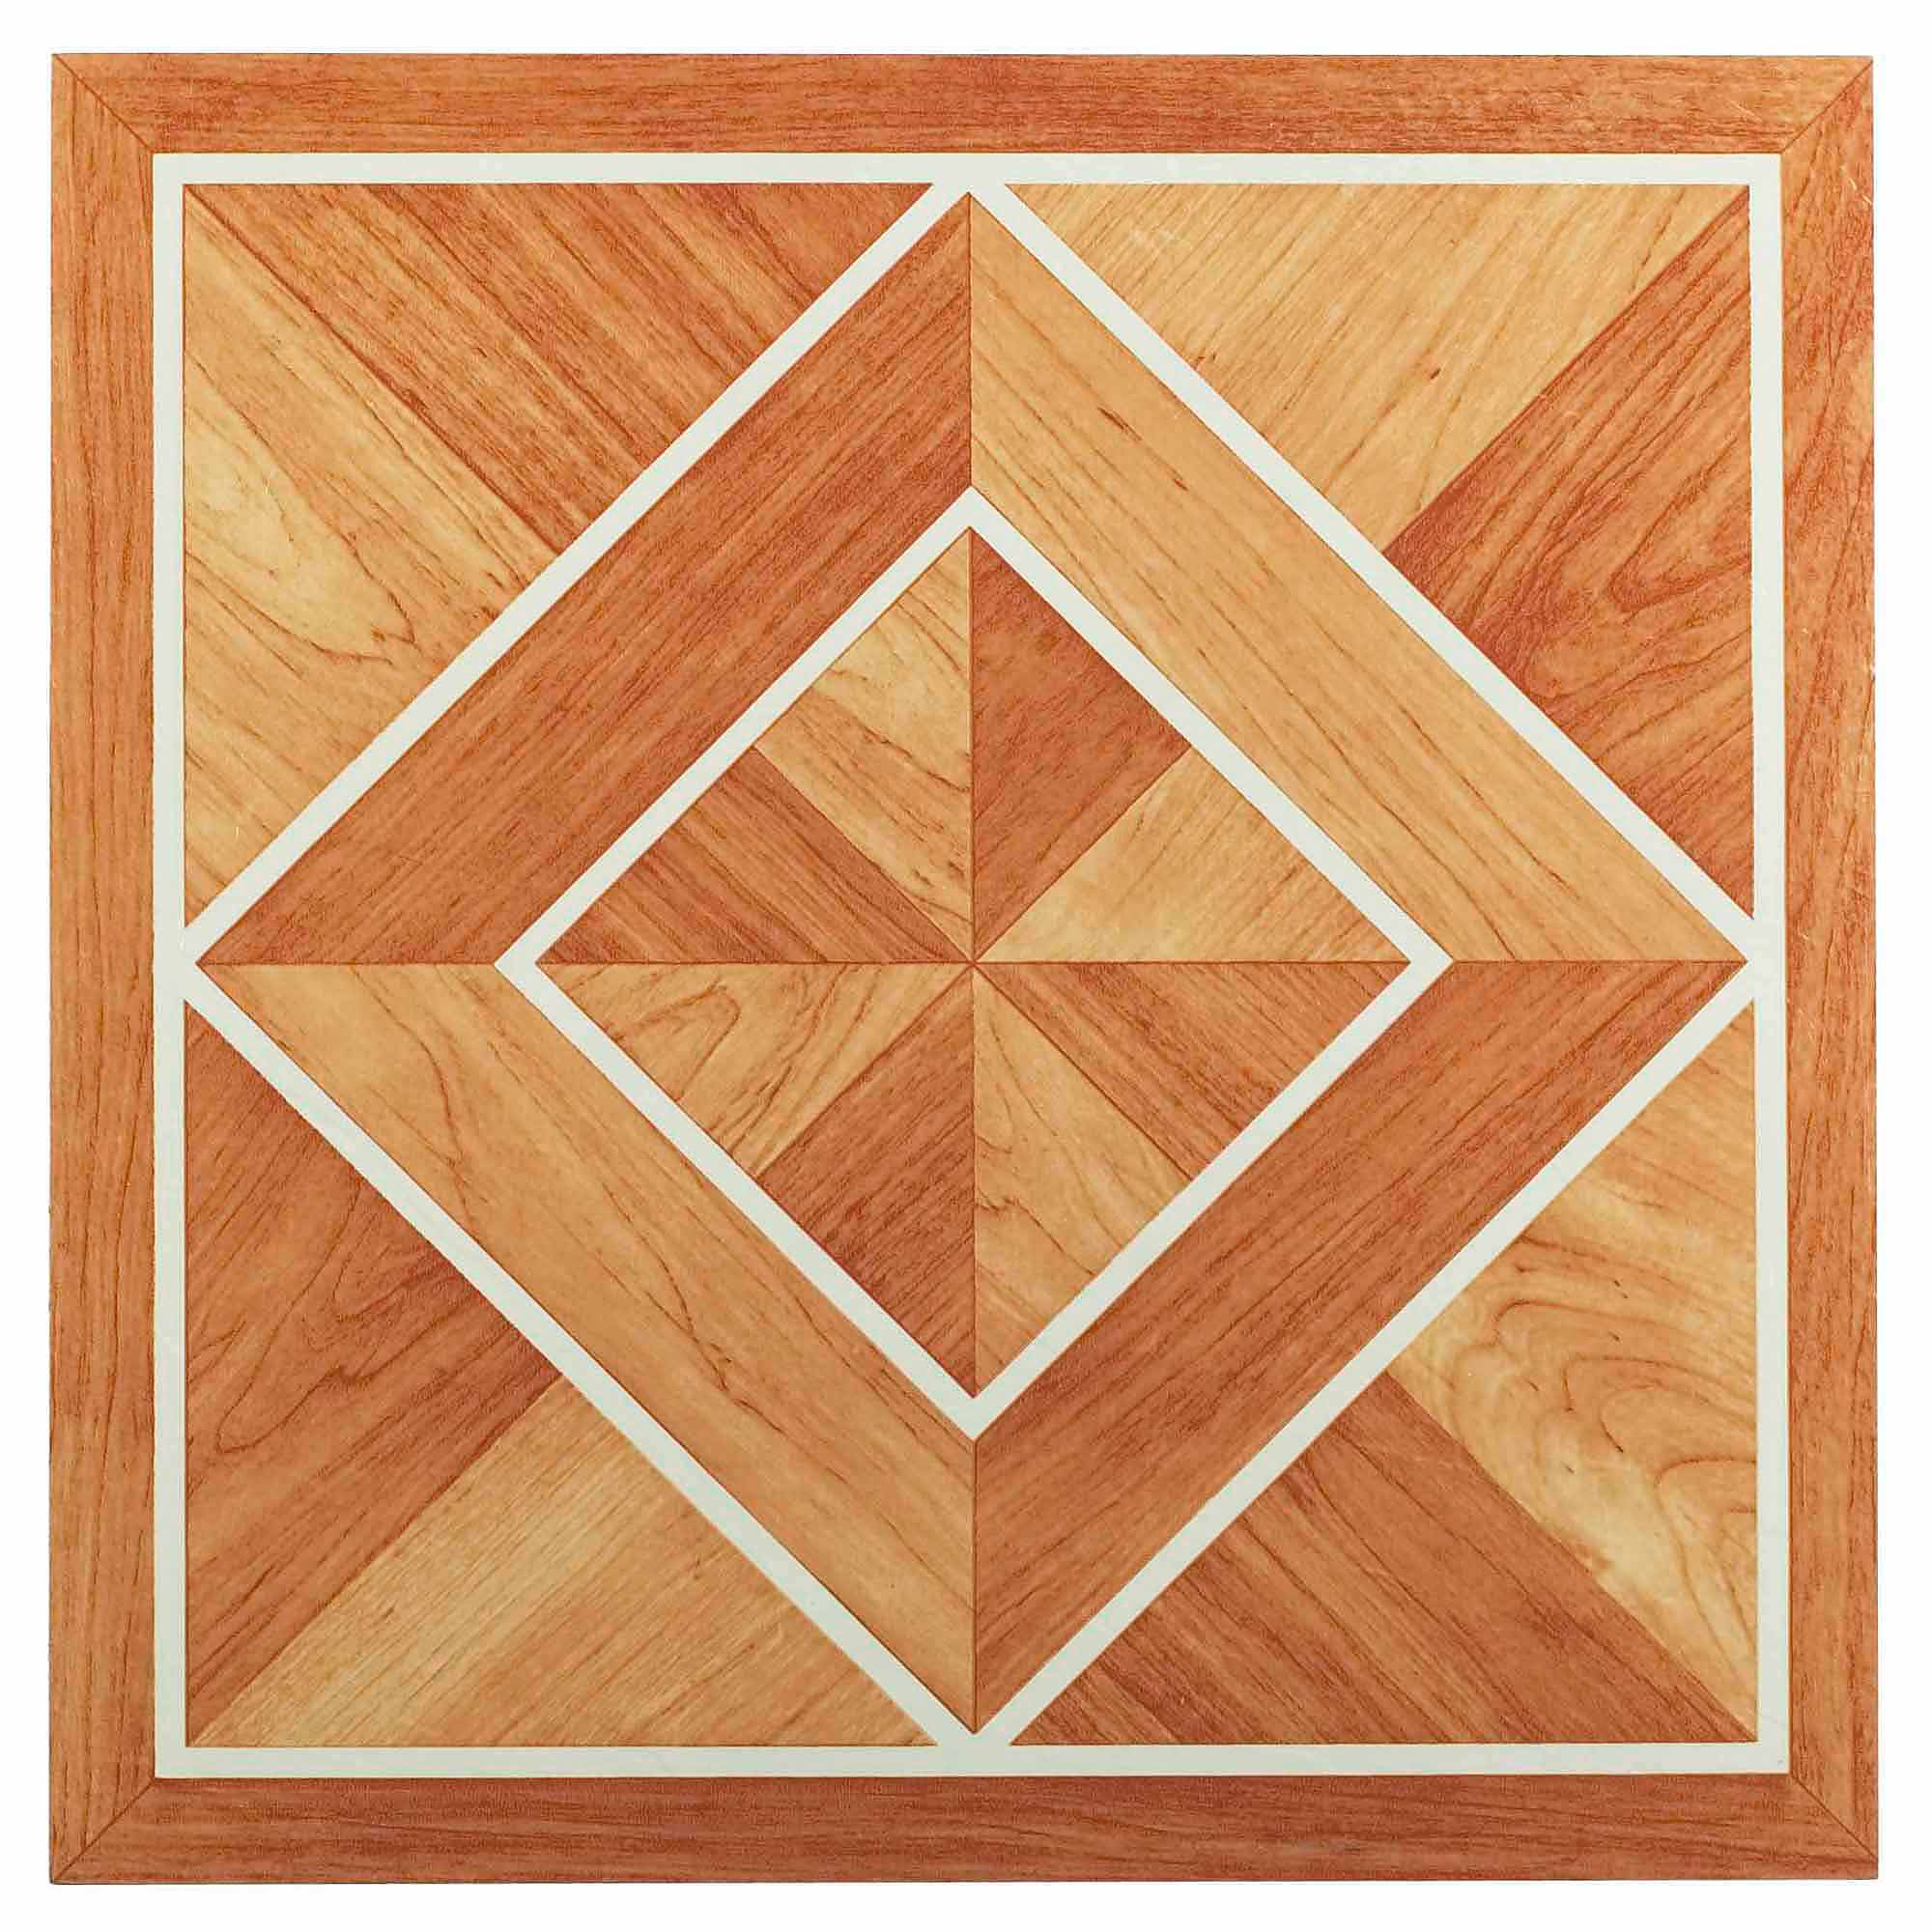 Remarkable Tile Self Adhesive Beige Self Stick Vinyl Floor Tiles 25 Pcs X 12 X Gmtry Best Dining Table And Chair Ideas Images Gmtryco